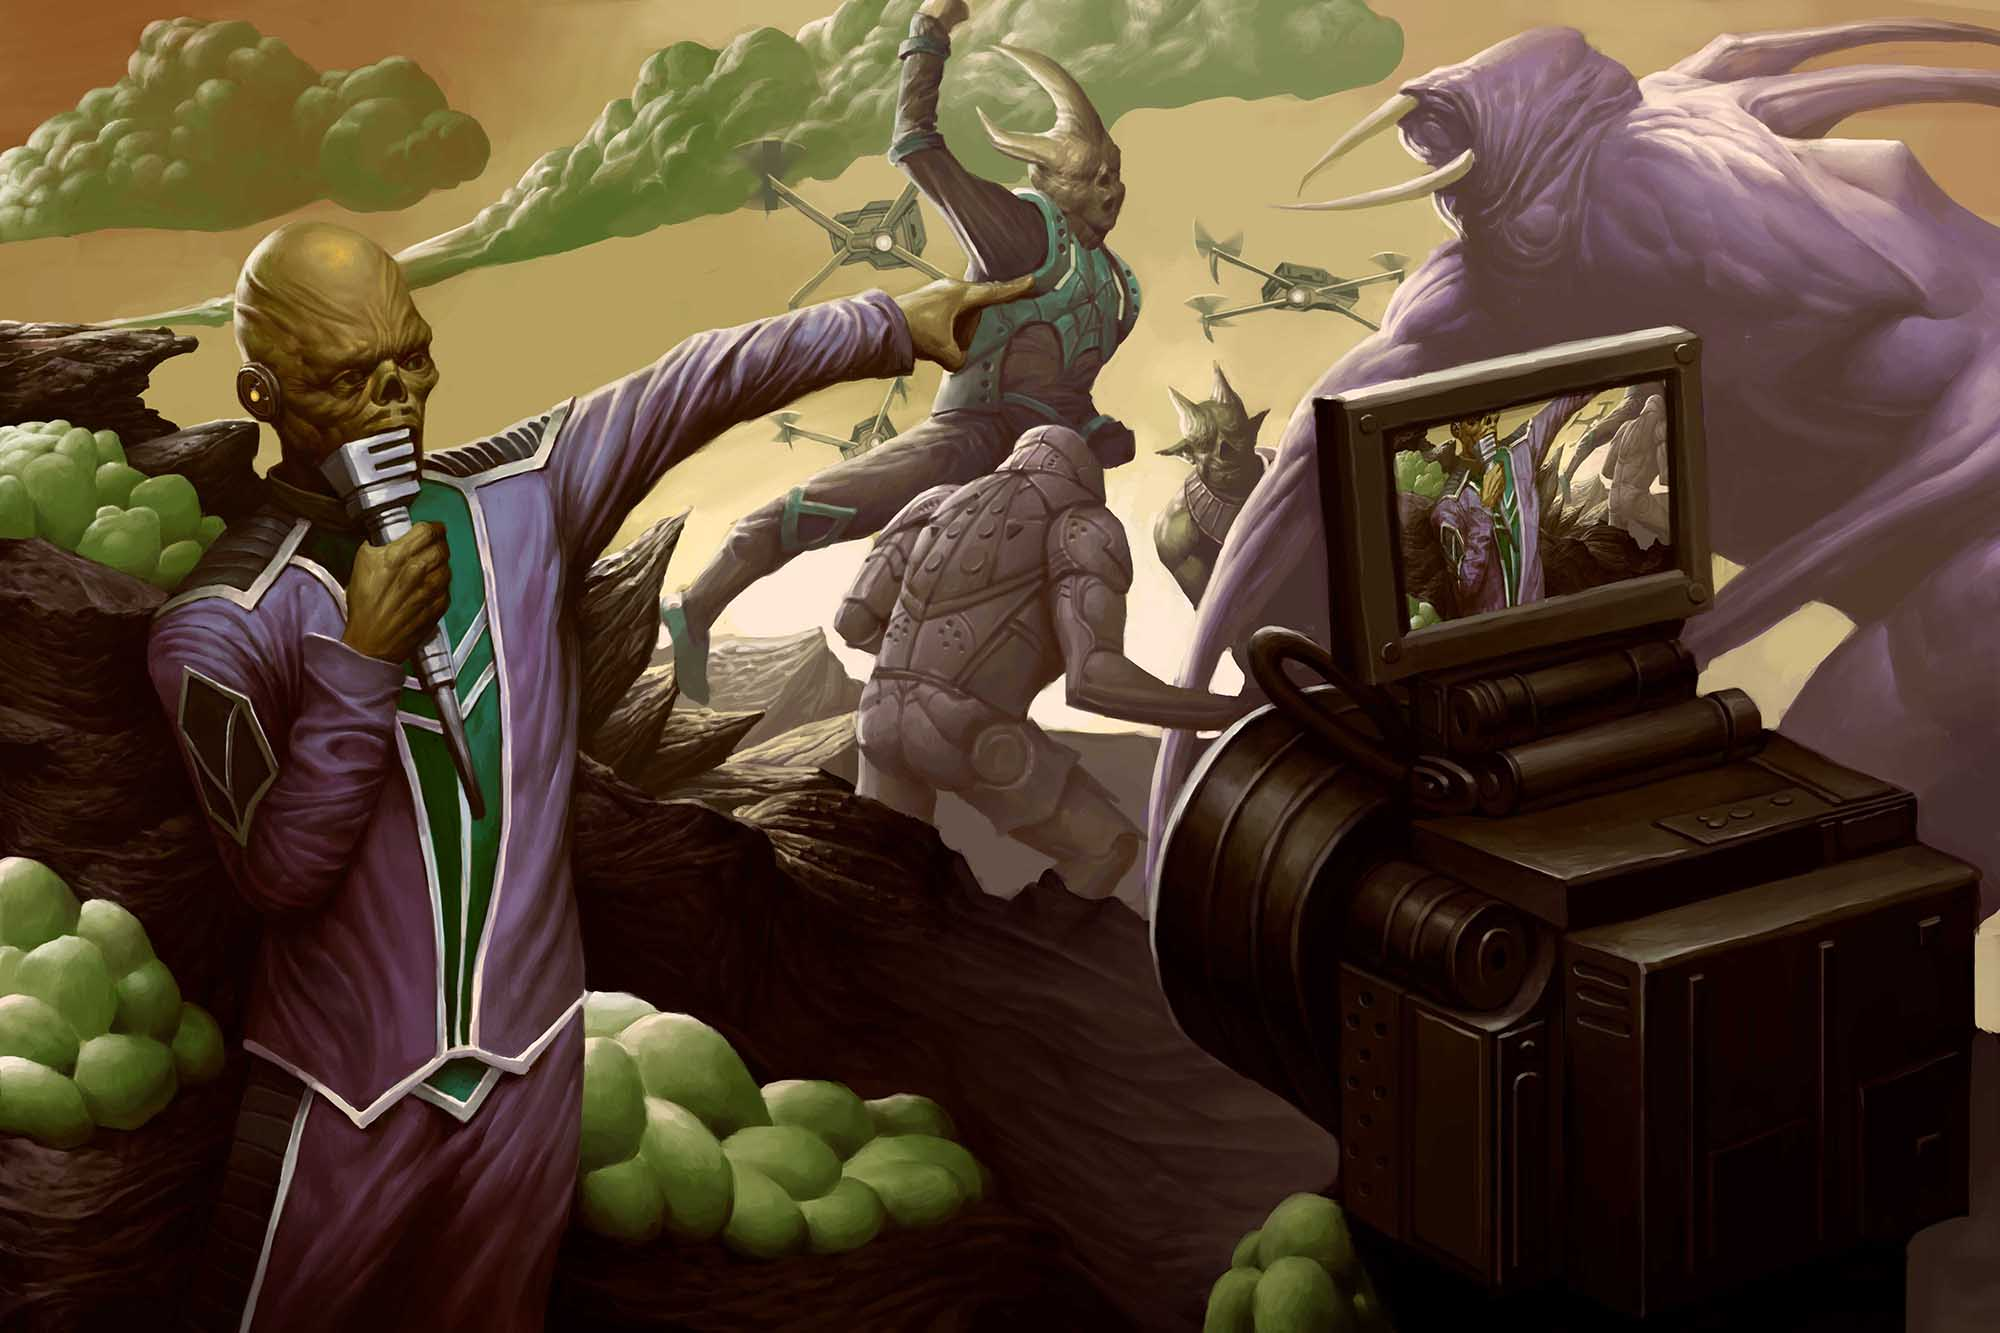 An undead humanoid holding a microphone stands in front of a video camera. He's pointing at a scene behind him in which some aliens are fighting a much larger monster on a weird planet